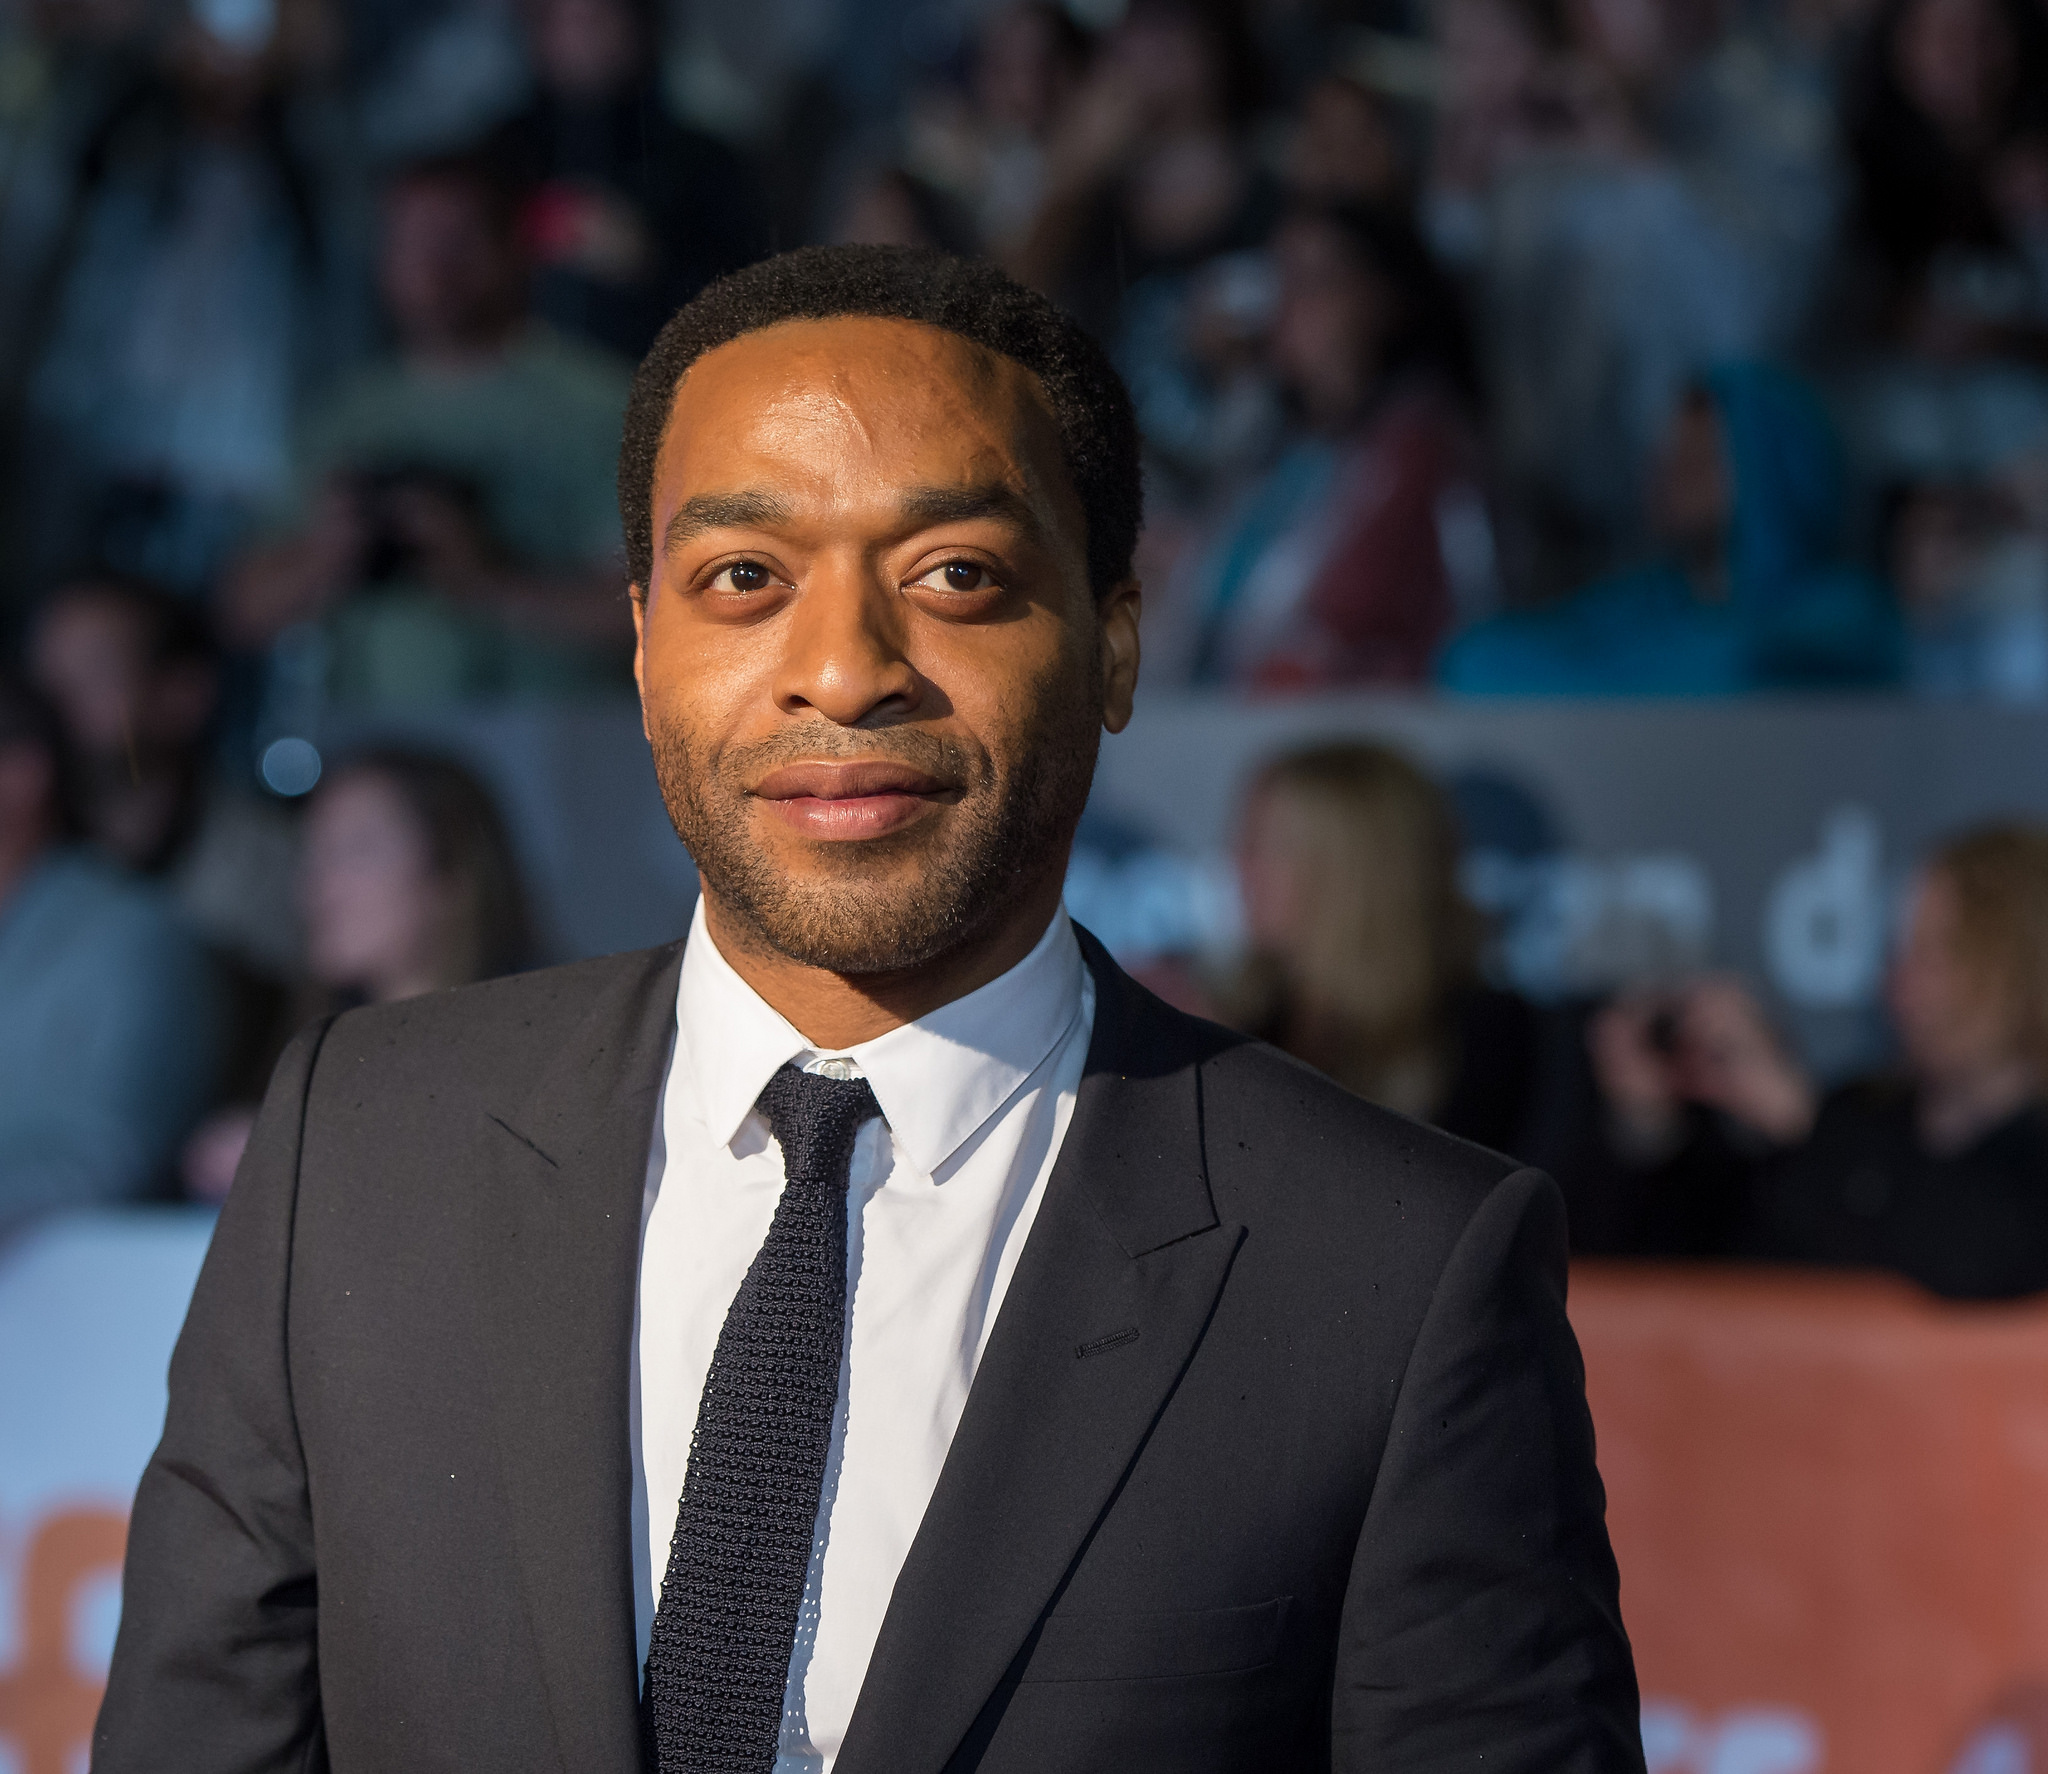 Actor Chiwetel Ejiofor attends